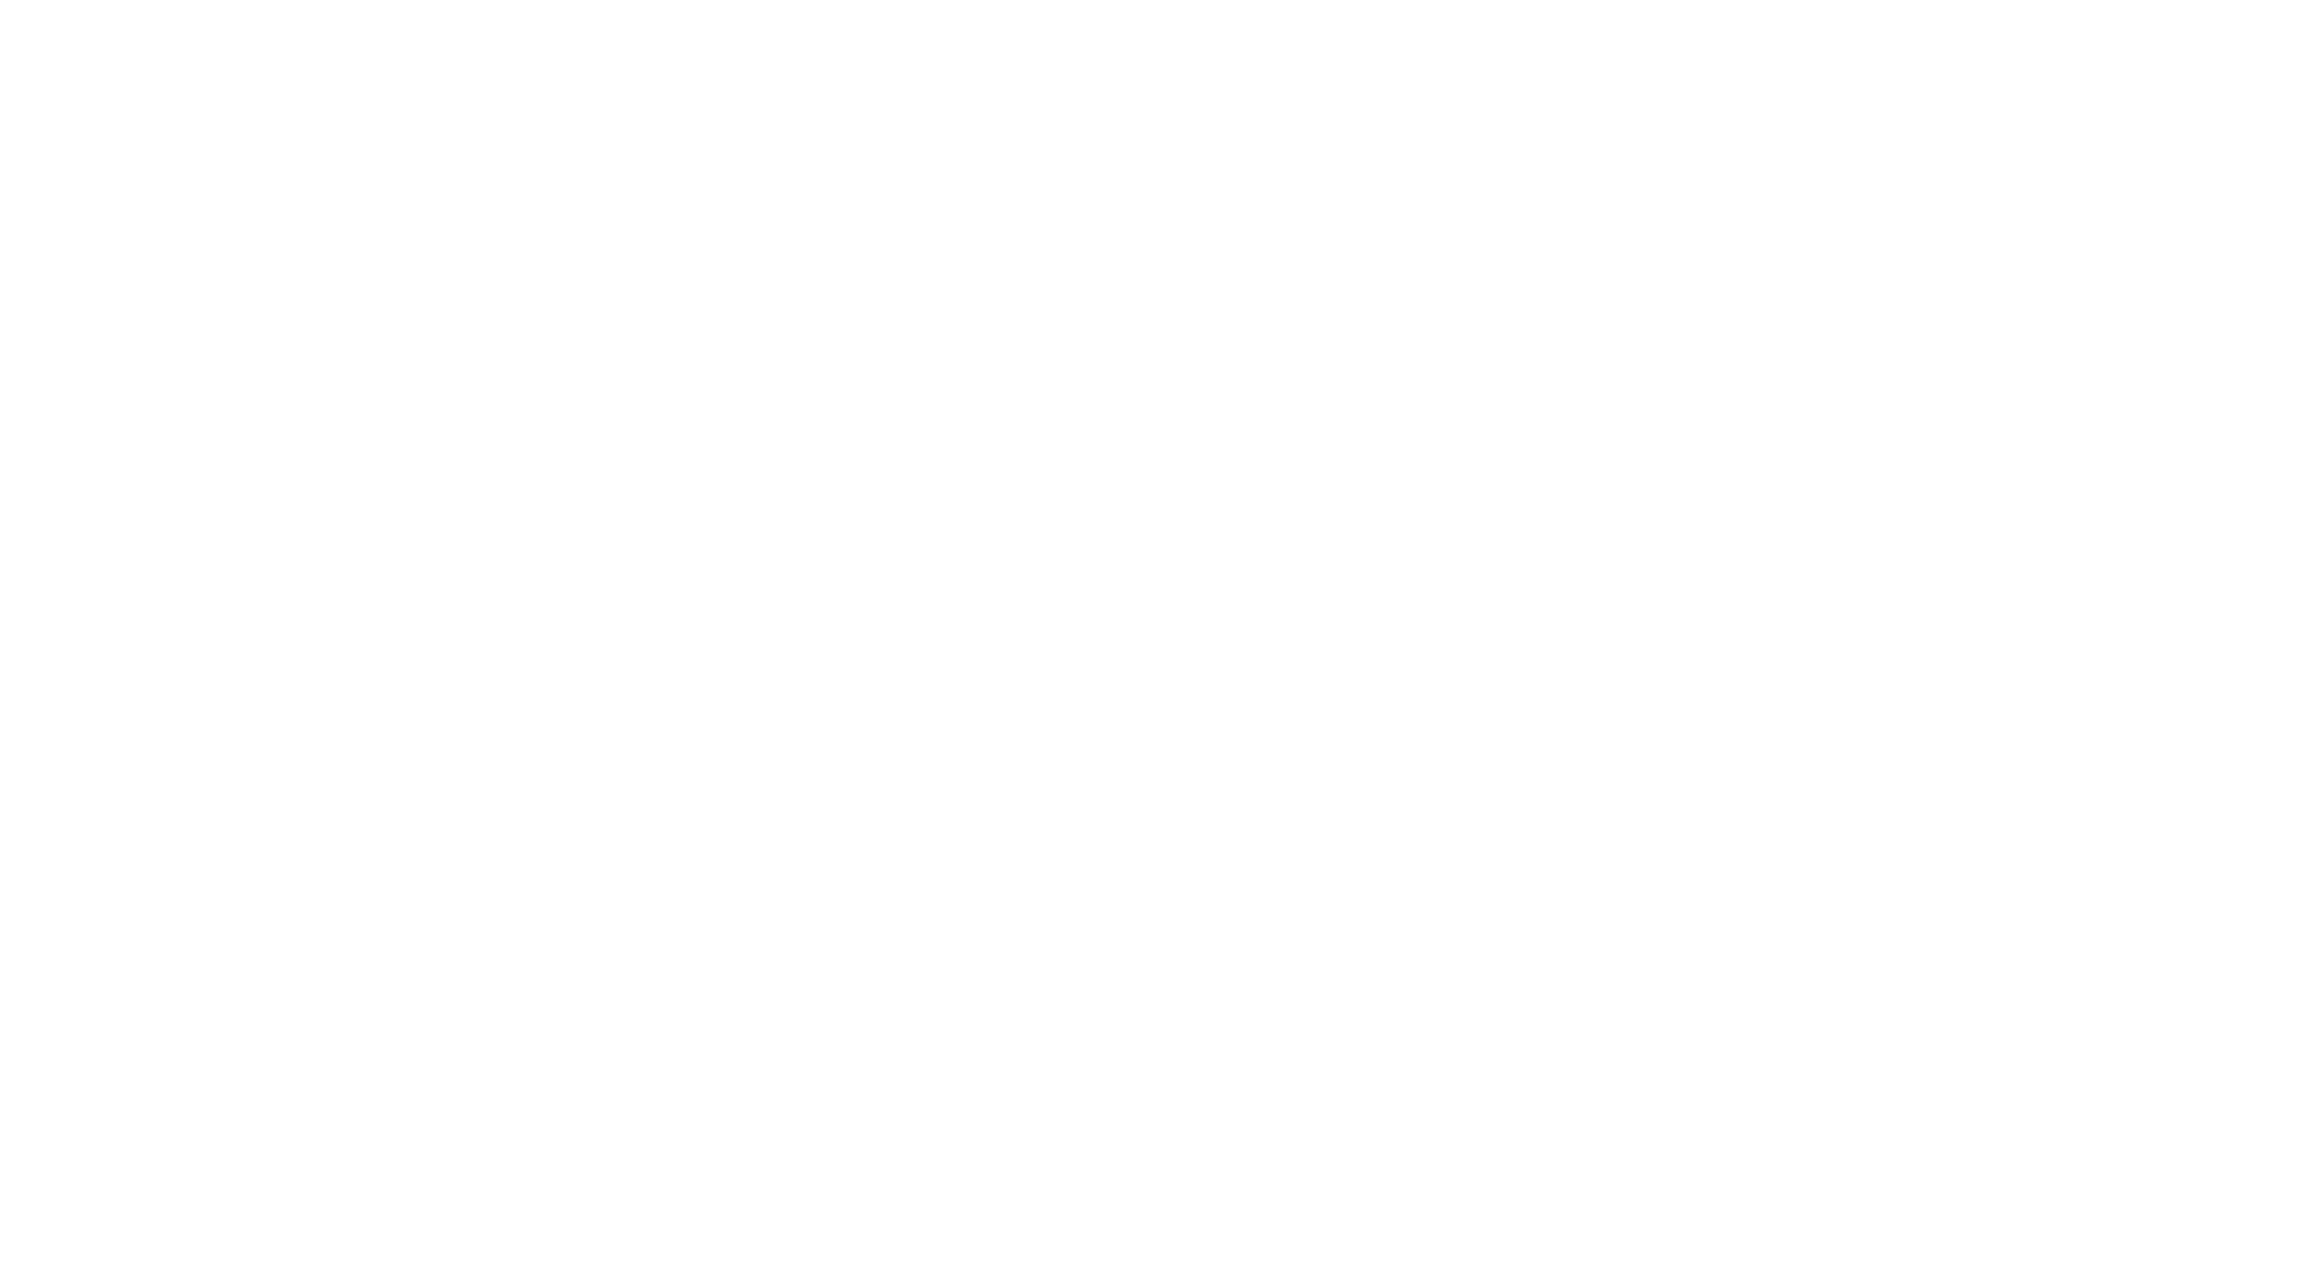 Hermes Auto Group